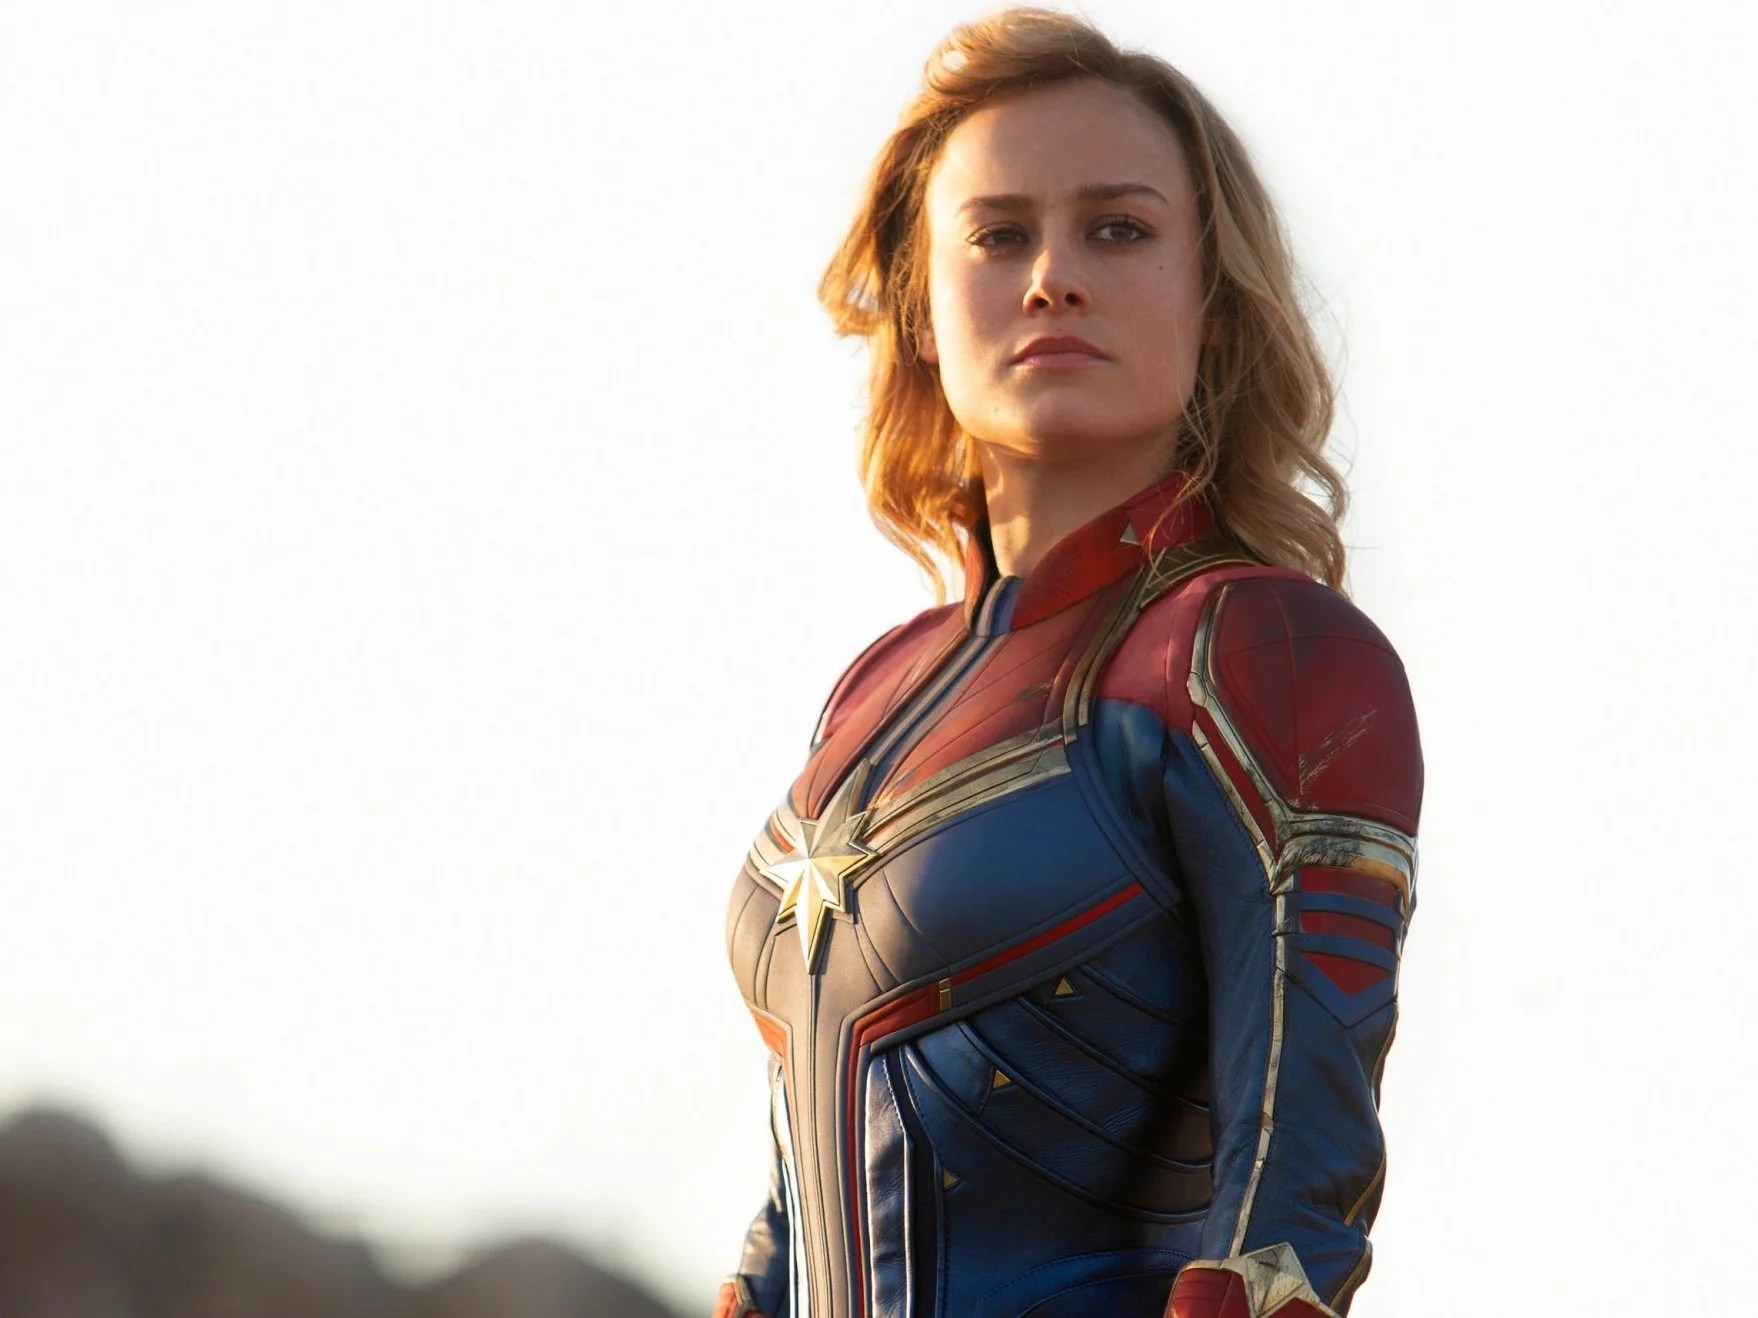 captain marvel delivers a perfect answer to her trolls | the independent